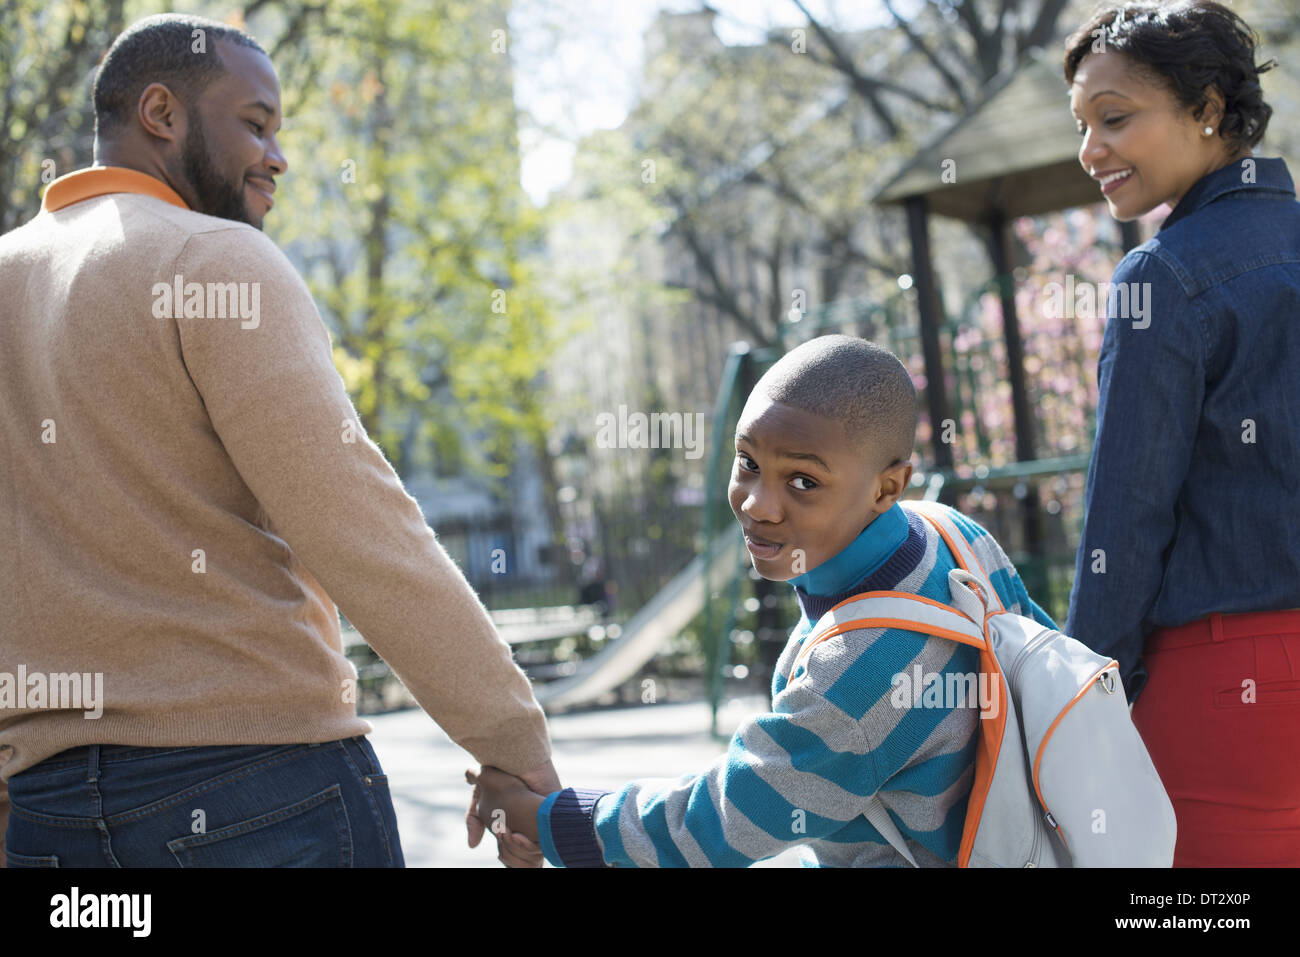 Sunshine and cherry blossom A boy looking over his shoulder between his parents - Stock Image